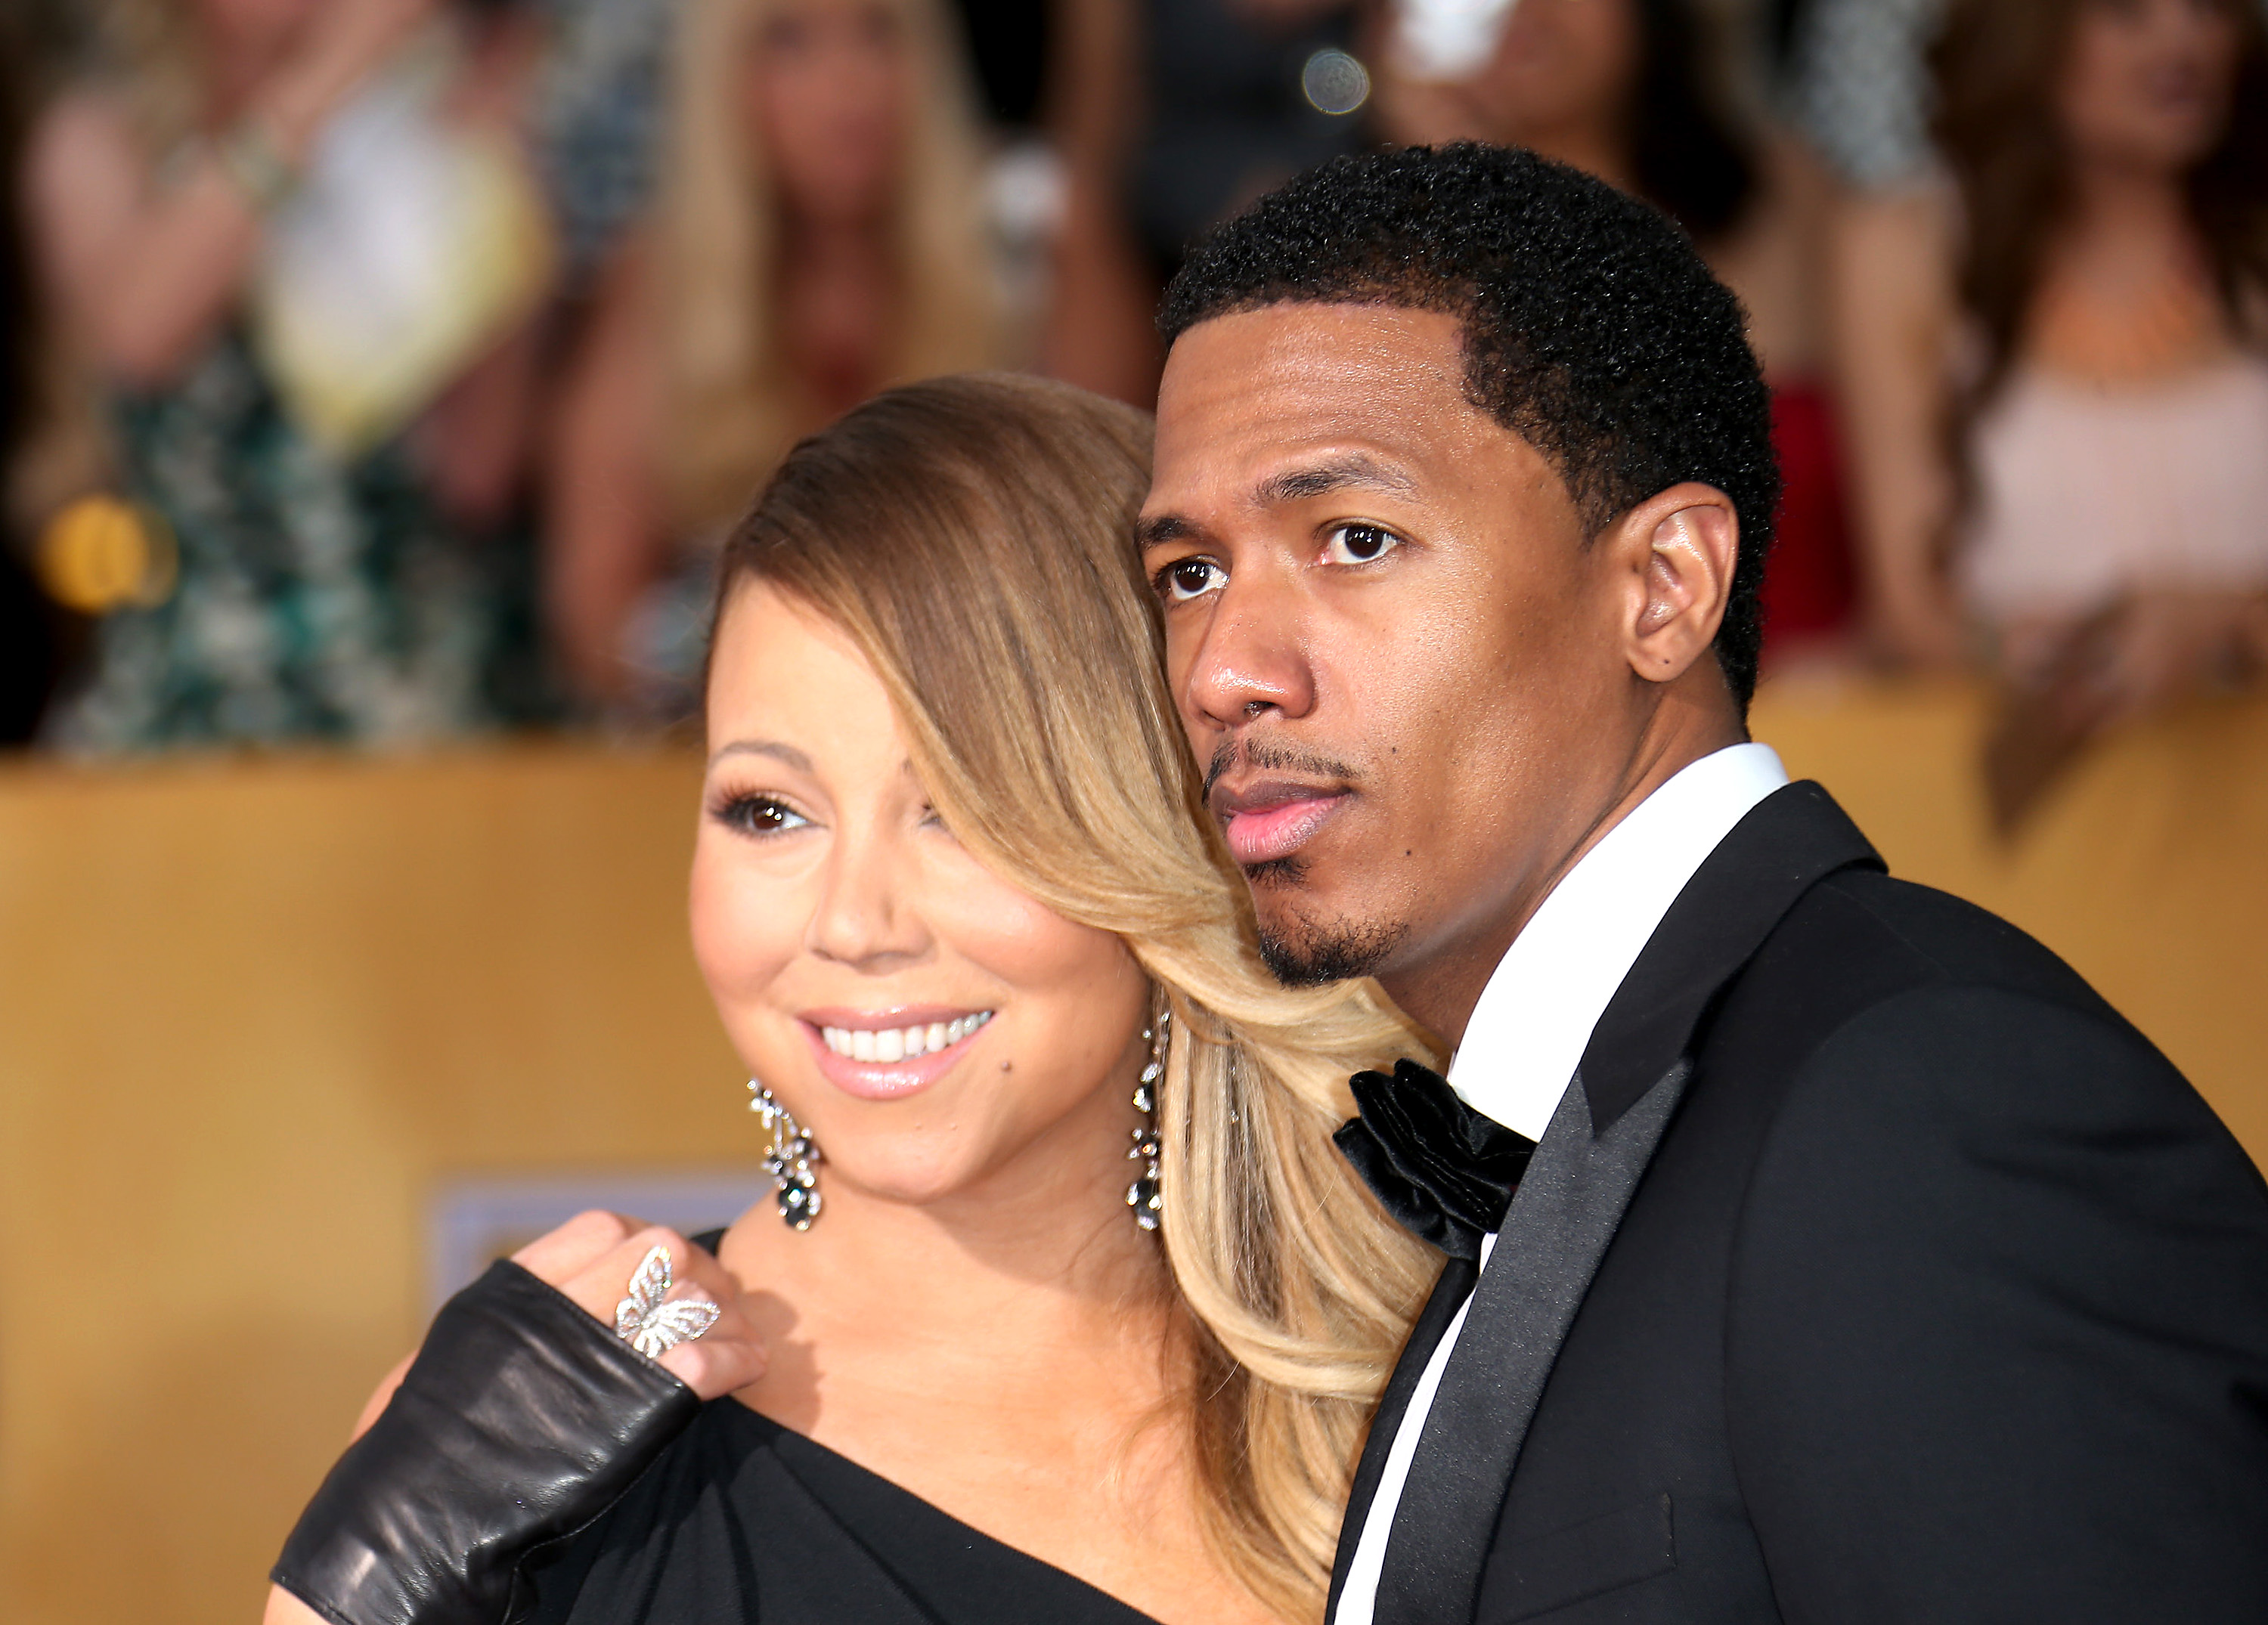 Mariah Carey and Nick Cannon arrive at the 20th Annual Screen Actors Guild Awards at the Shrine Auditorium on January 18, 2014 in Los Angeles, California.